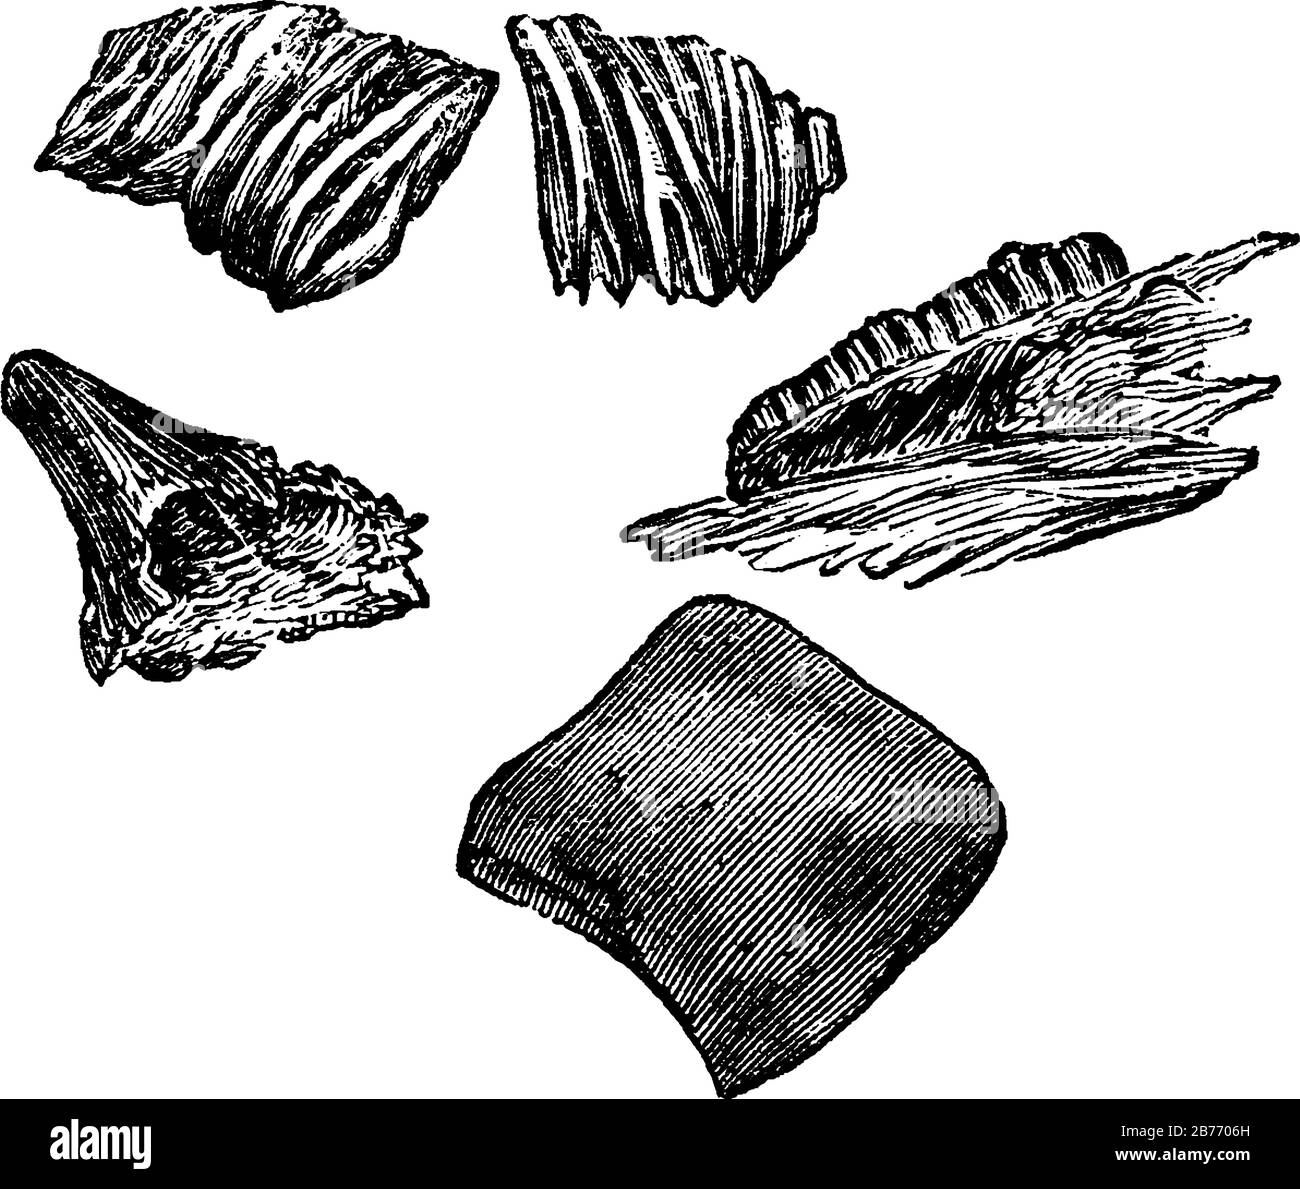 Carboniferous is the fifth period of the Palaeozoic era, between the Devonian and Permian periods. Shown here is the teeth and scales of carboniferous Stock Vector